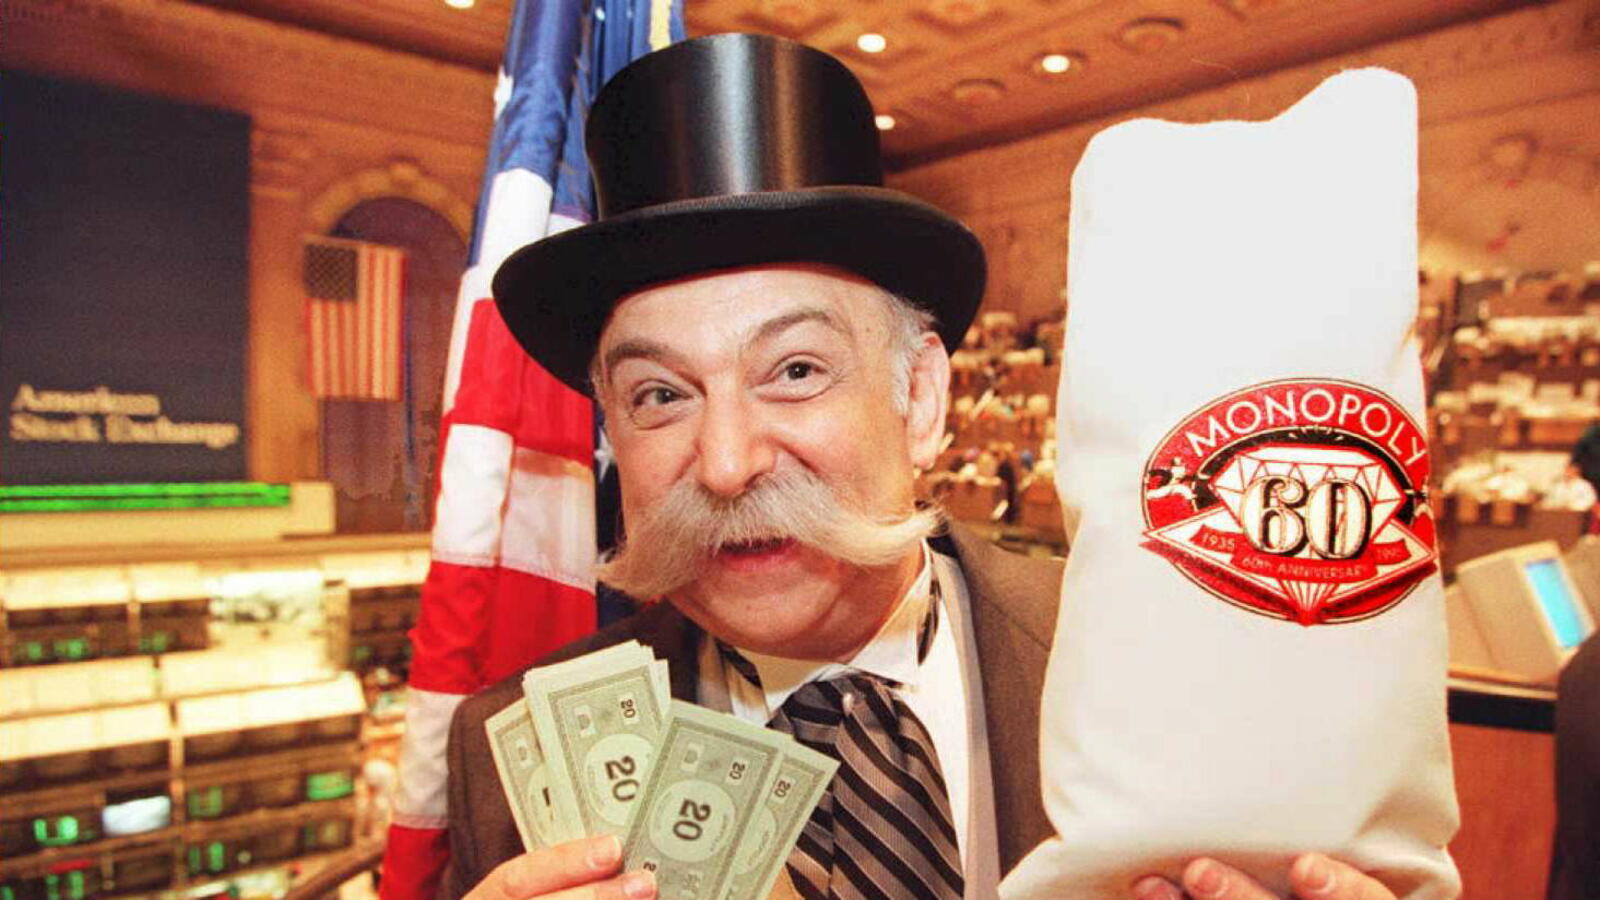 Bar in Massachusetts Accepted Monopoly Money as Payment